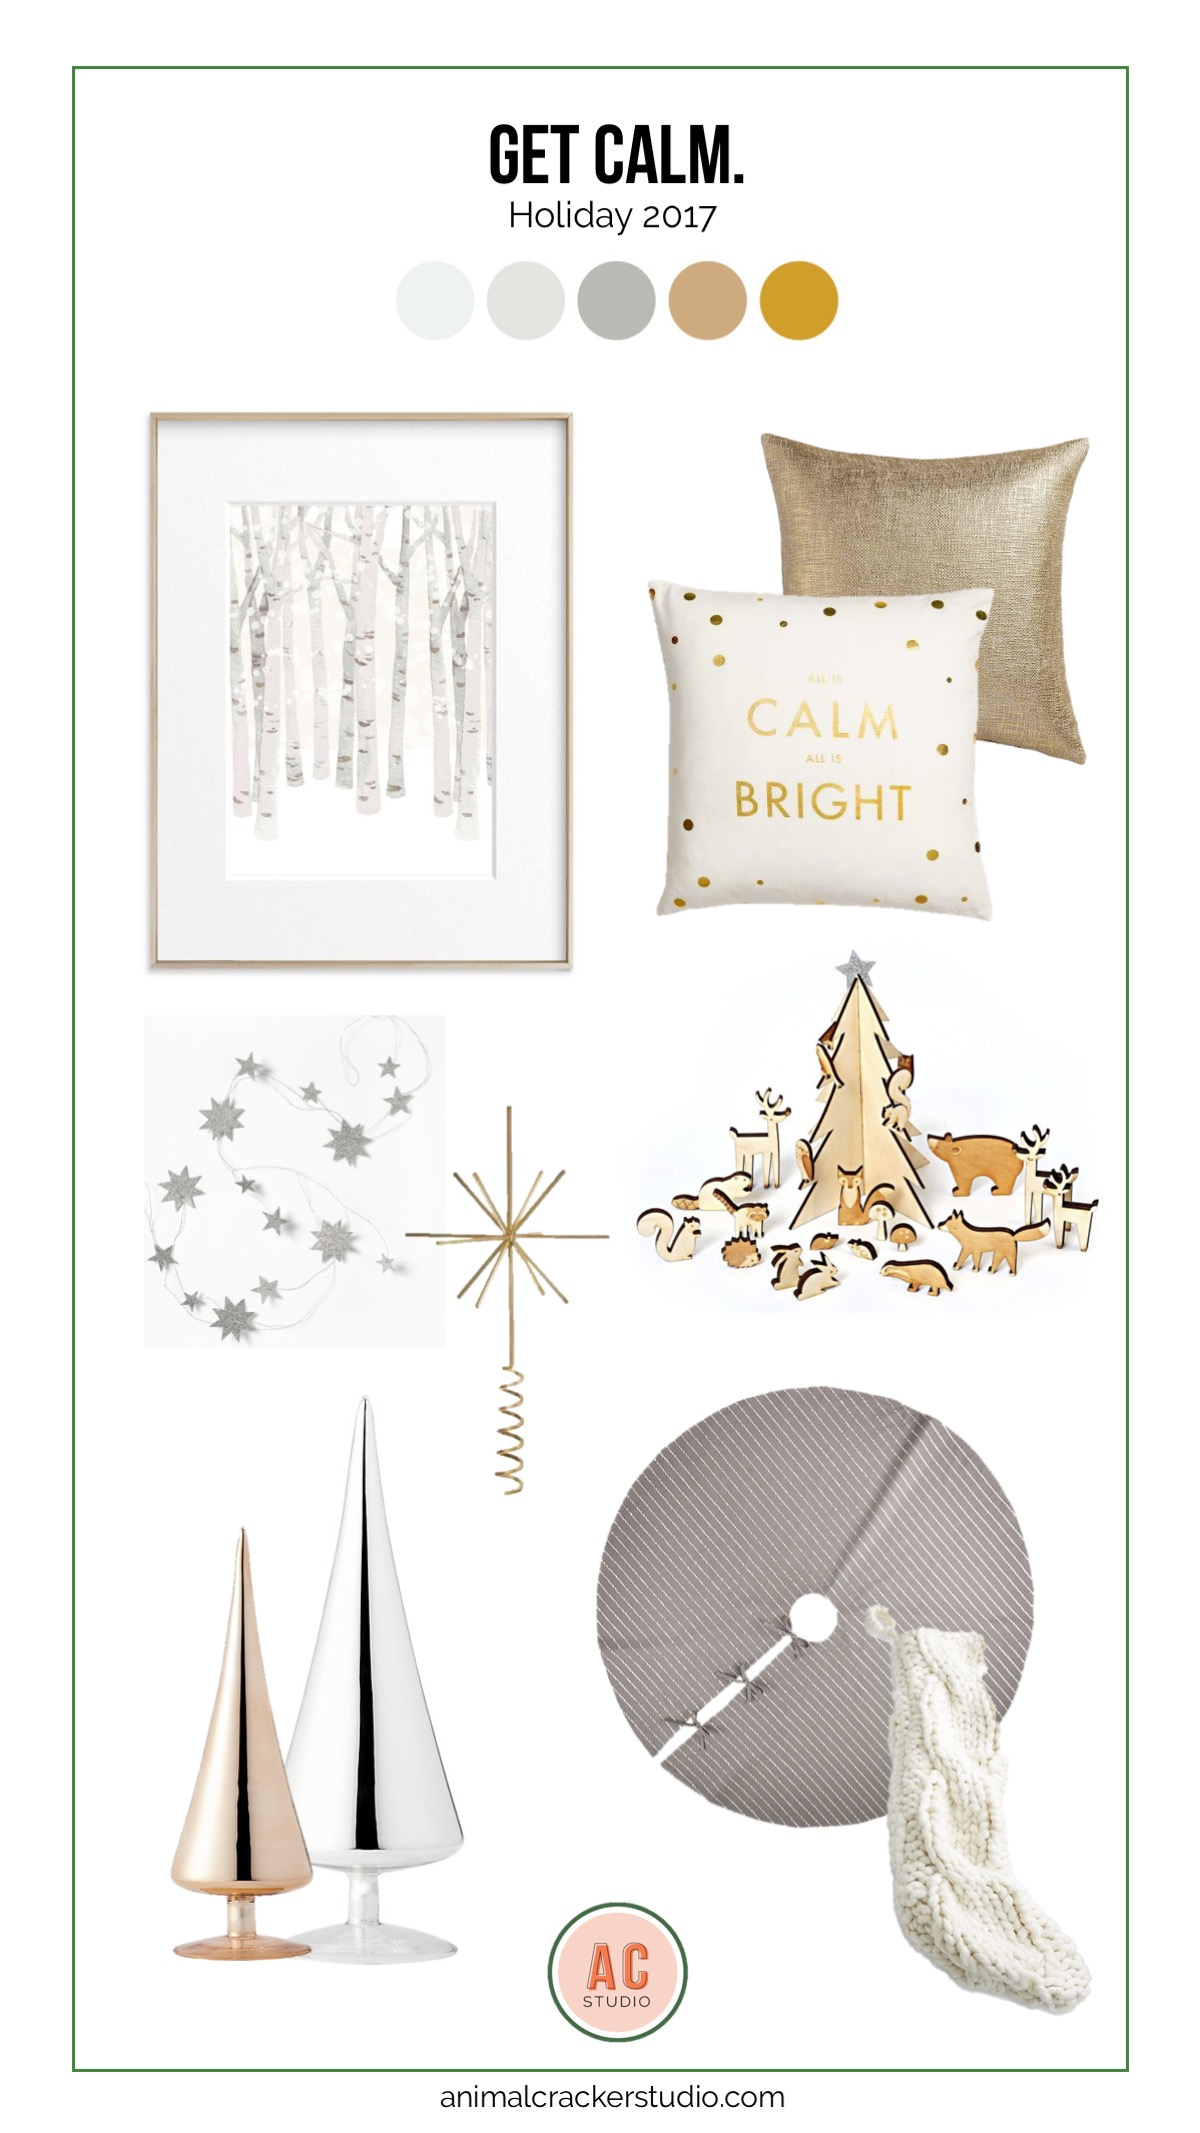 Sources (ditto the comment about affiliate links above):  Woods print ,  calm and bright pillow ,  glitterati pillow ,  advent calendar ,  tree skirt ,  knit stocking ,  glass trees ,  tree topper ,  star garland .